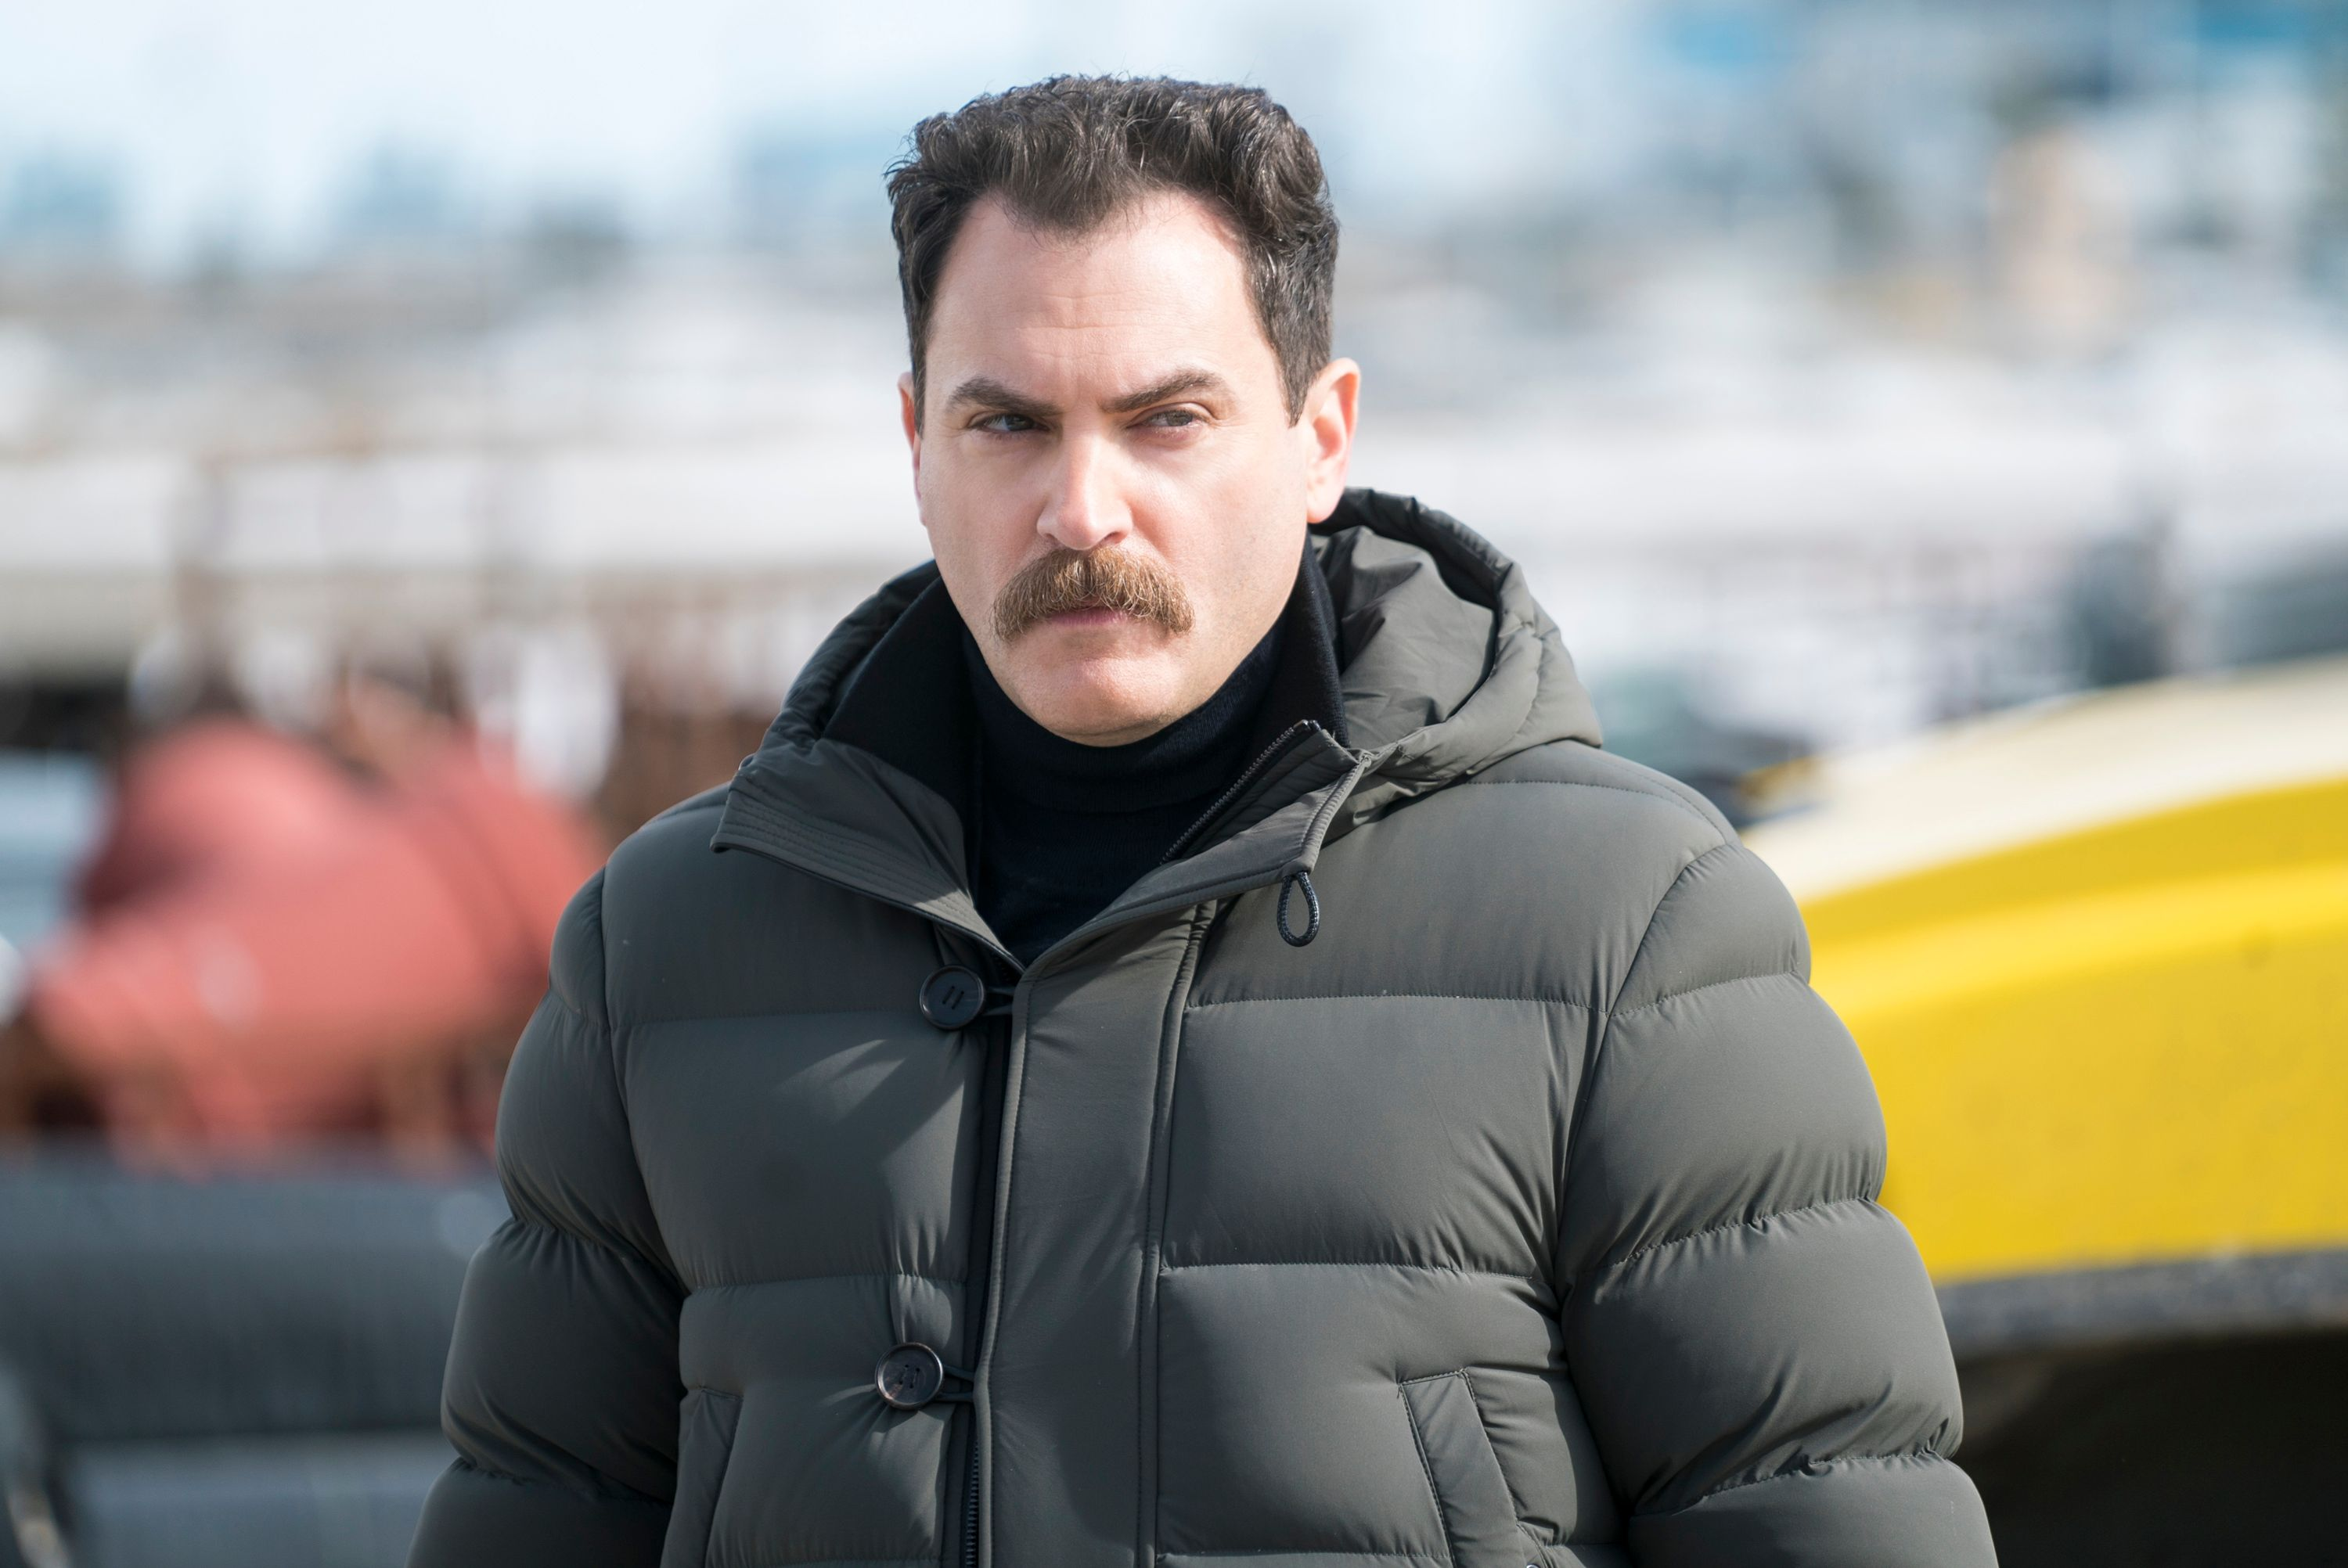 fargo-season-3-episode-5-michael-stuhlba